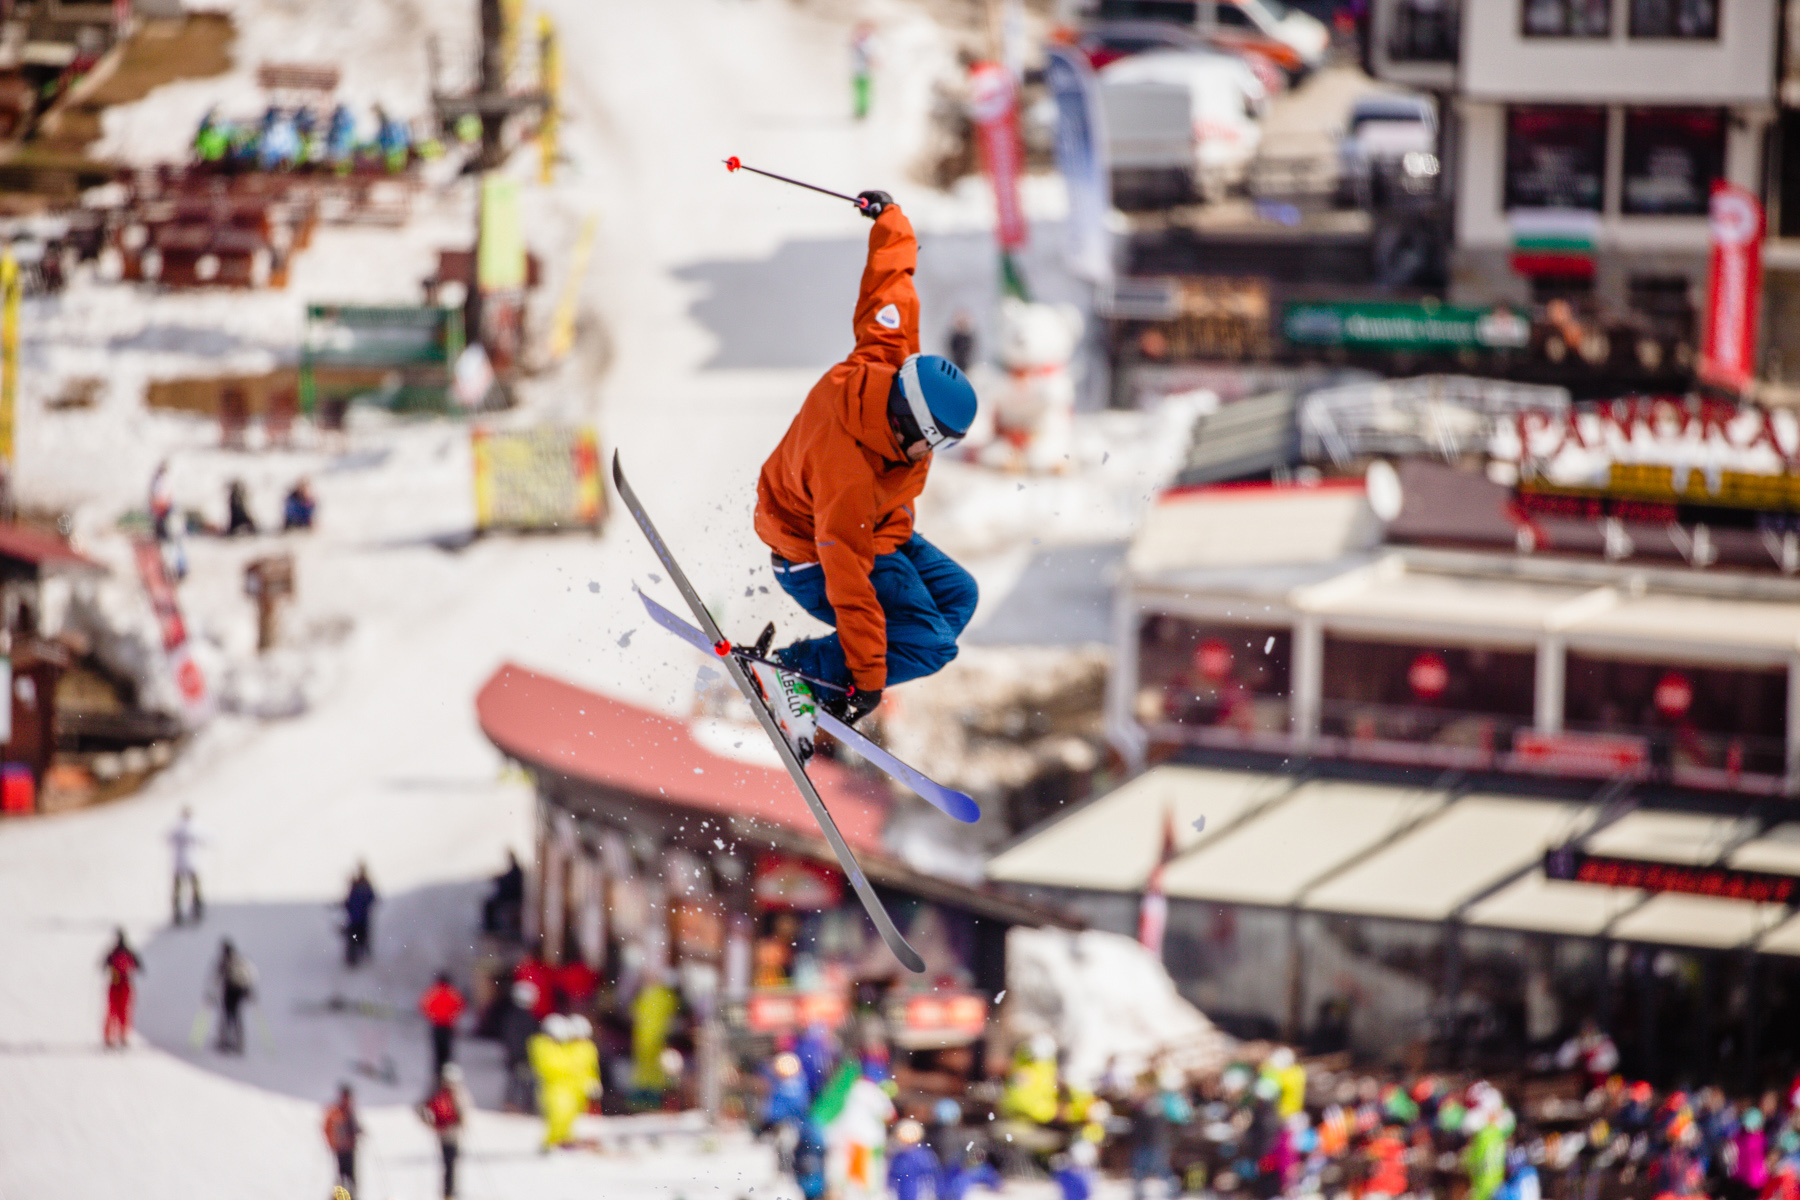 PSIA Alpine Team member Ryan Christofferson does a park trick